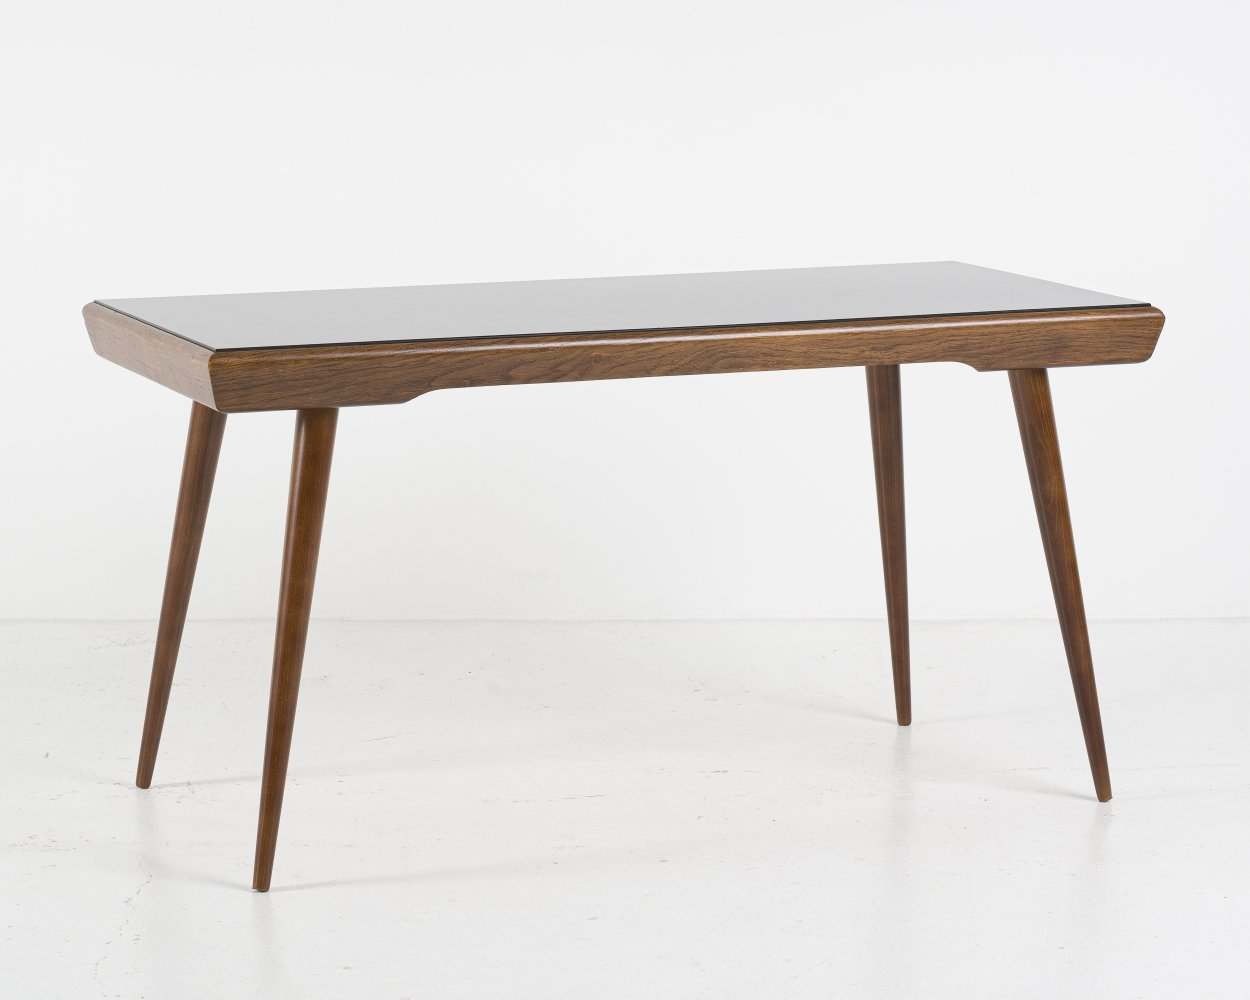 Black opaxit glass coffee table from Interier Praha, 1960